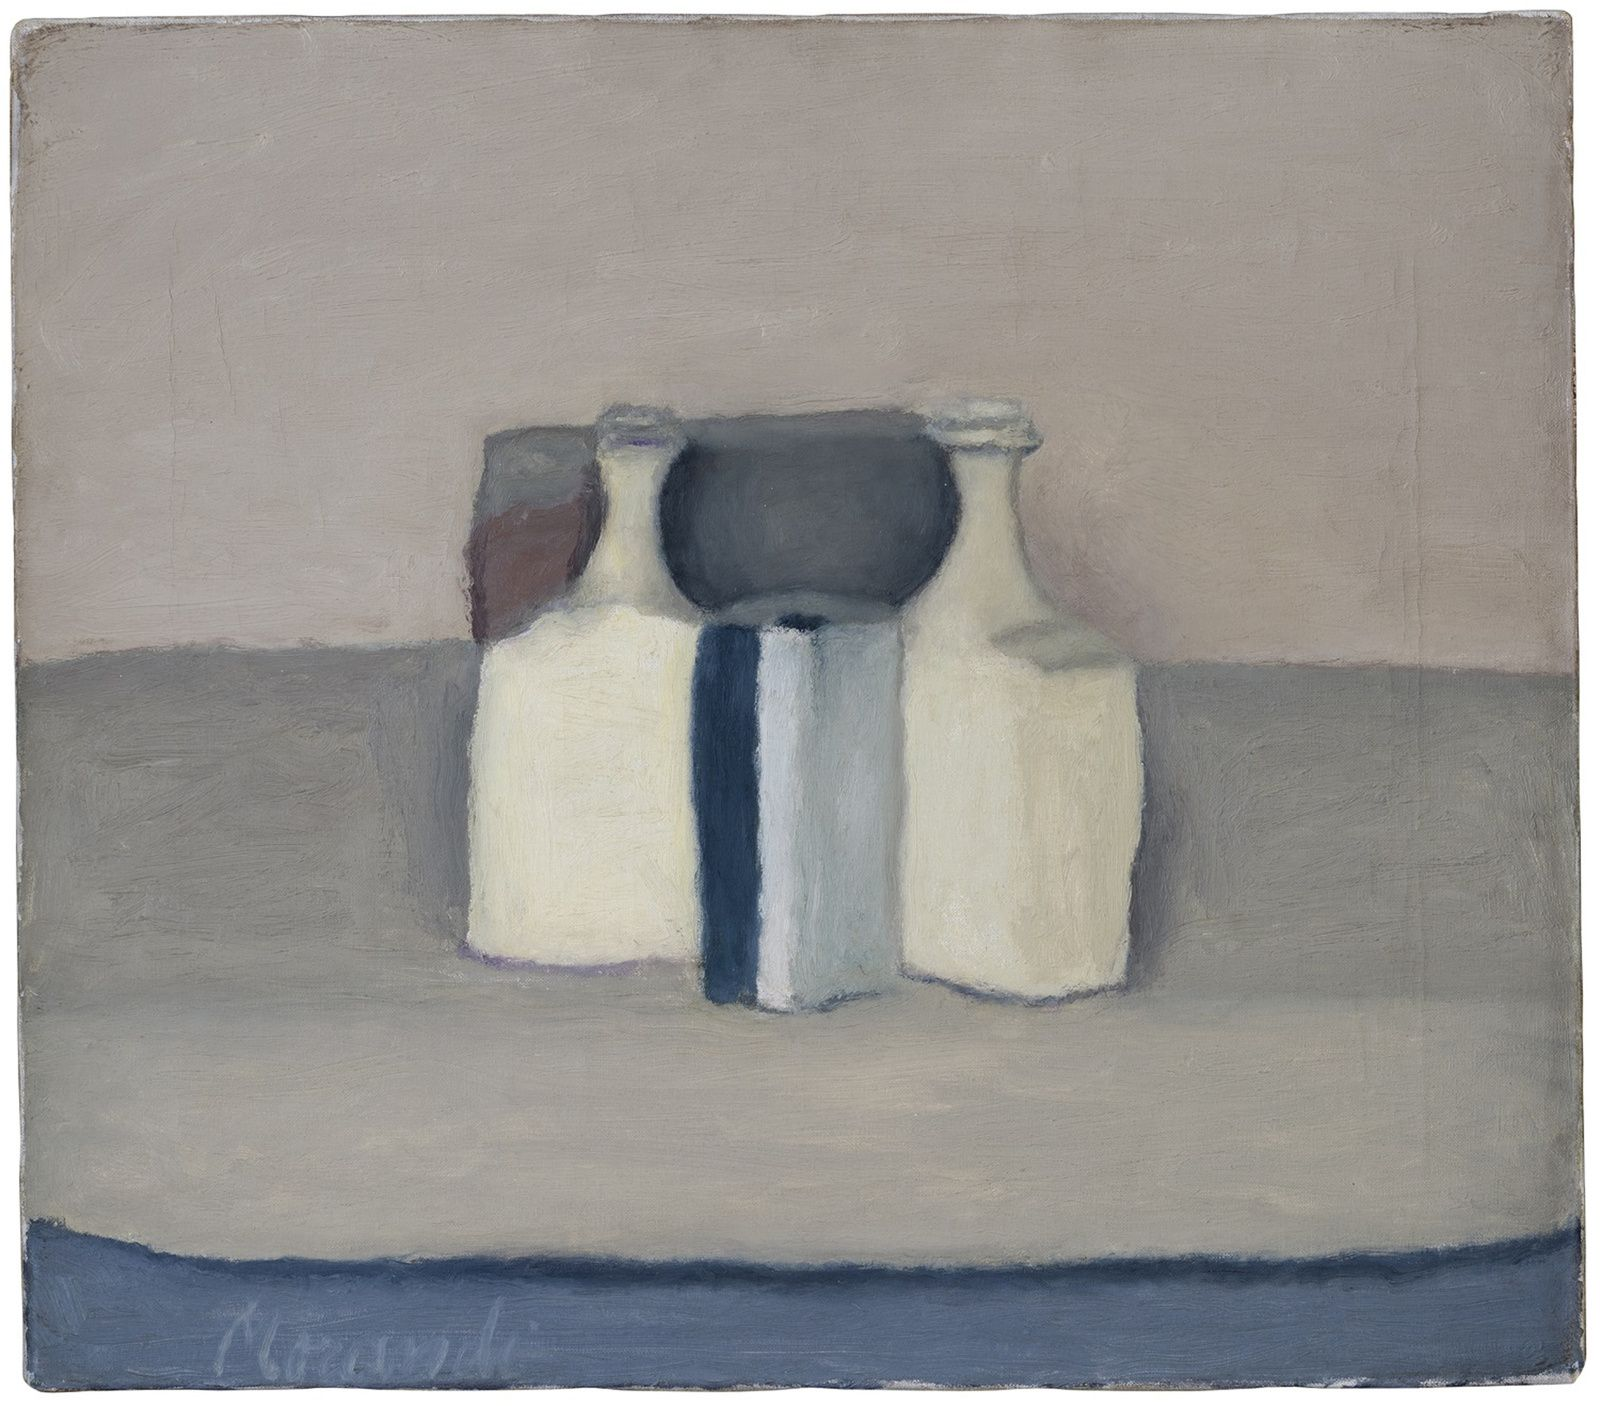 """Natura morta"", 1958 de Giorgio MORANDI - Courtesy Collection Privée"